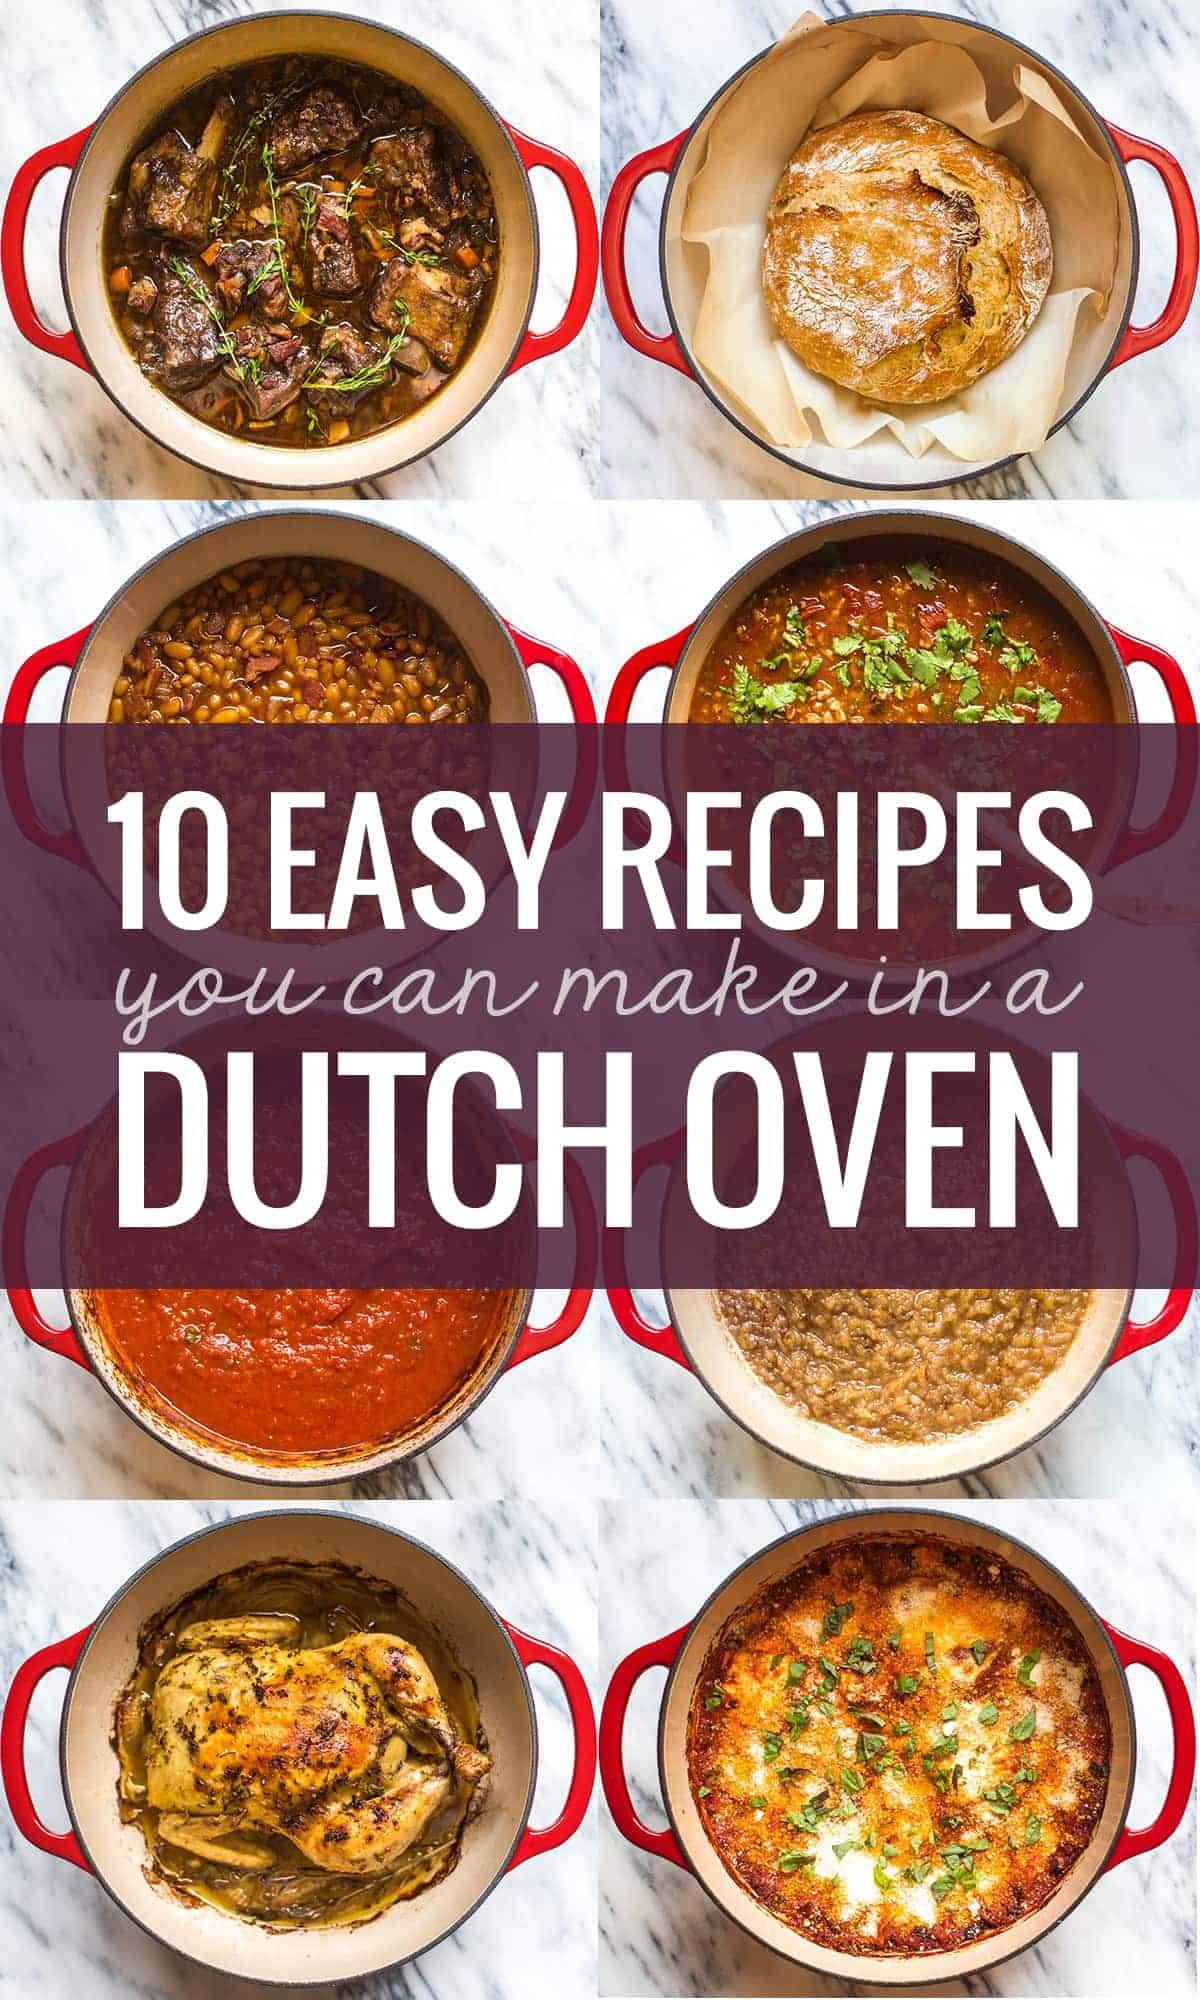 10 easy recipes you can make in a dutch oven pinch of yum 10 easy recipes you can make in a dutch oven forumfinder Gallery